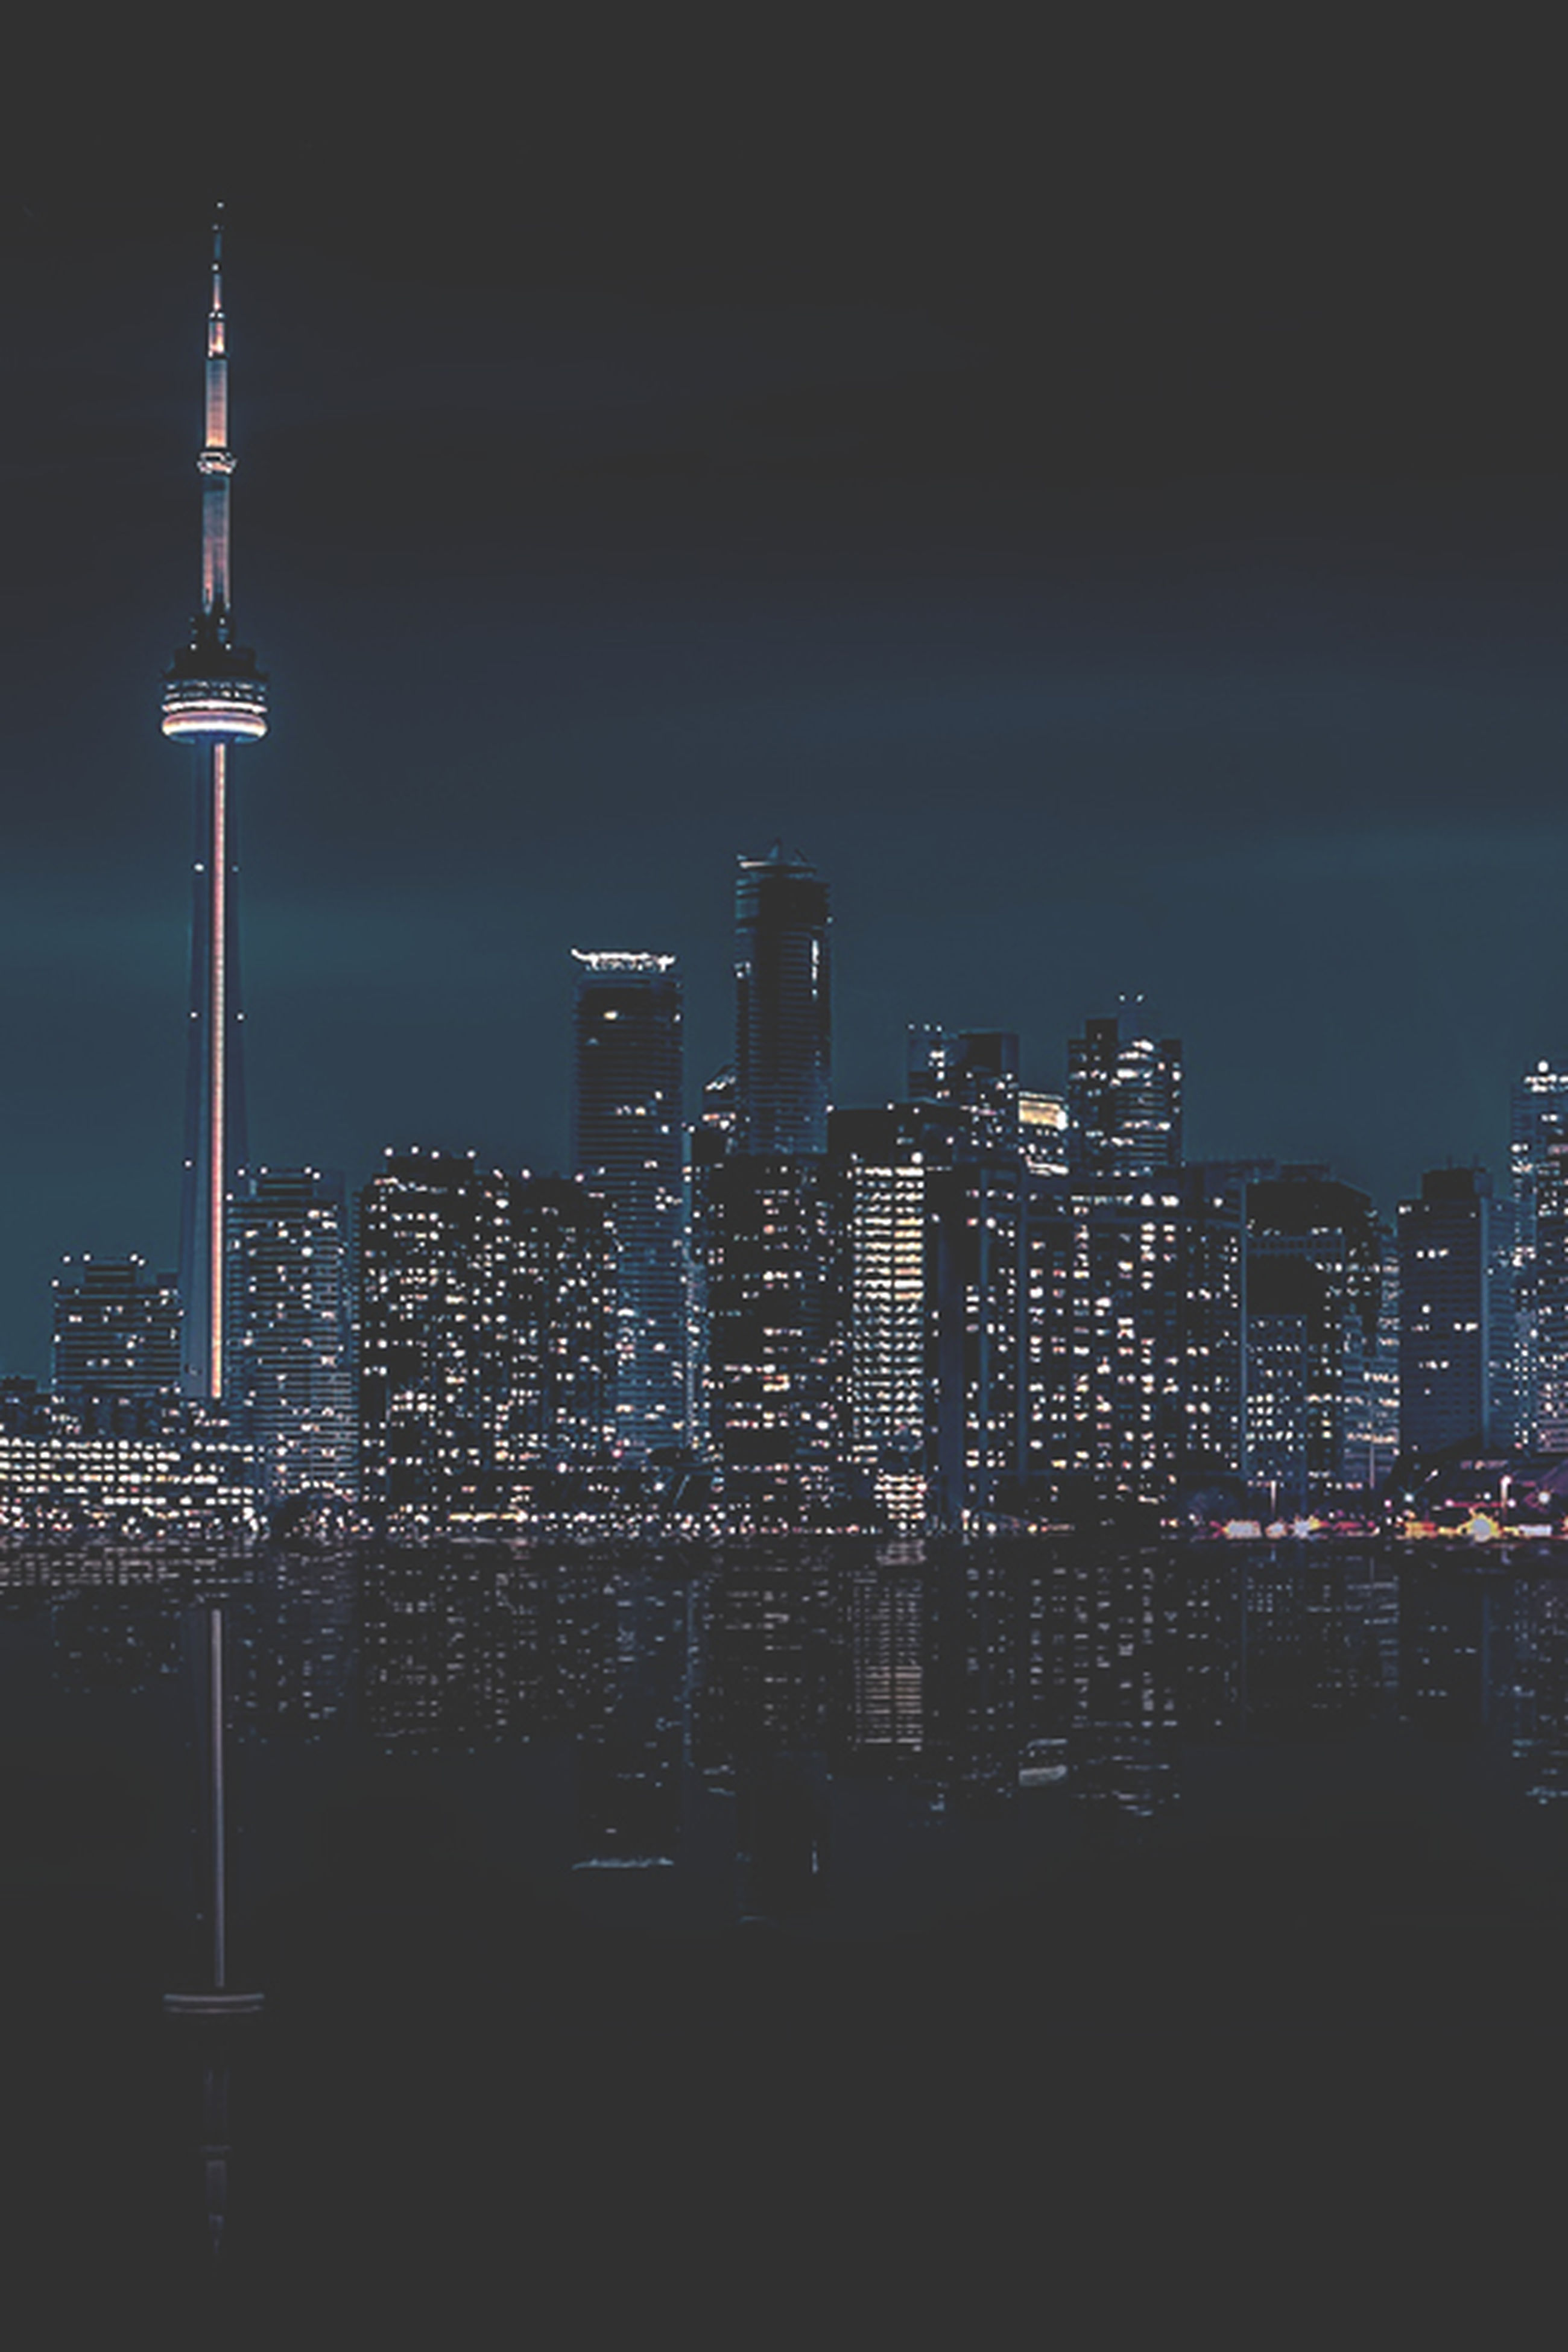 illuminated, architecture, building exterior, night, built structure, city, tower, skyscraper, tall - high, modern, cityscape, capital cities, communications tower, sky, office building, lighting equipment, travel destinations, famous place, spire, international landmark